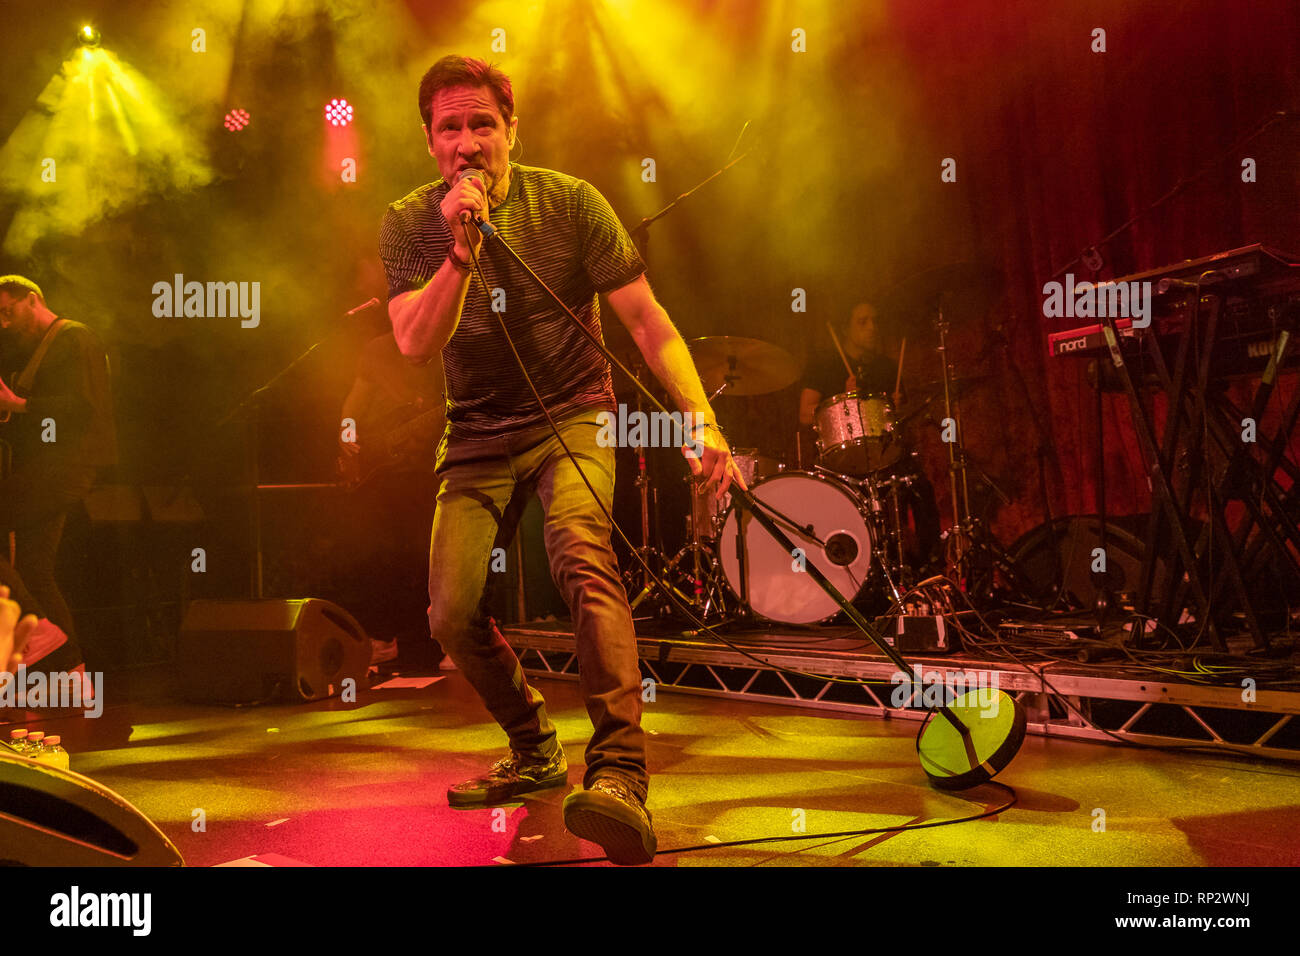 Dublin, Ireland. 20th Feb, 2019. X Files actor David Duchovny (Fox Mulder) sings on stage in Dublin's Academy music  venue. Credit: SOPA Images Limited/Alamy Live News - Stock Image